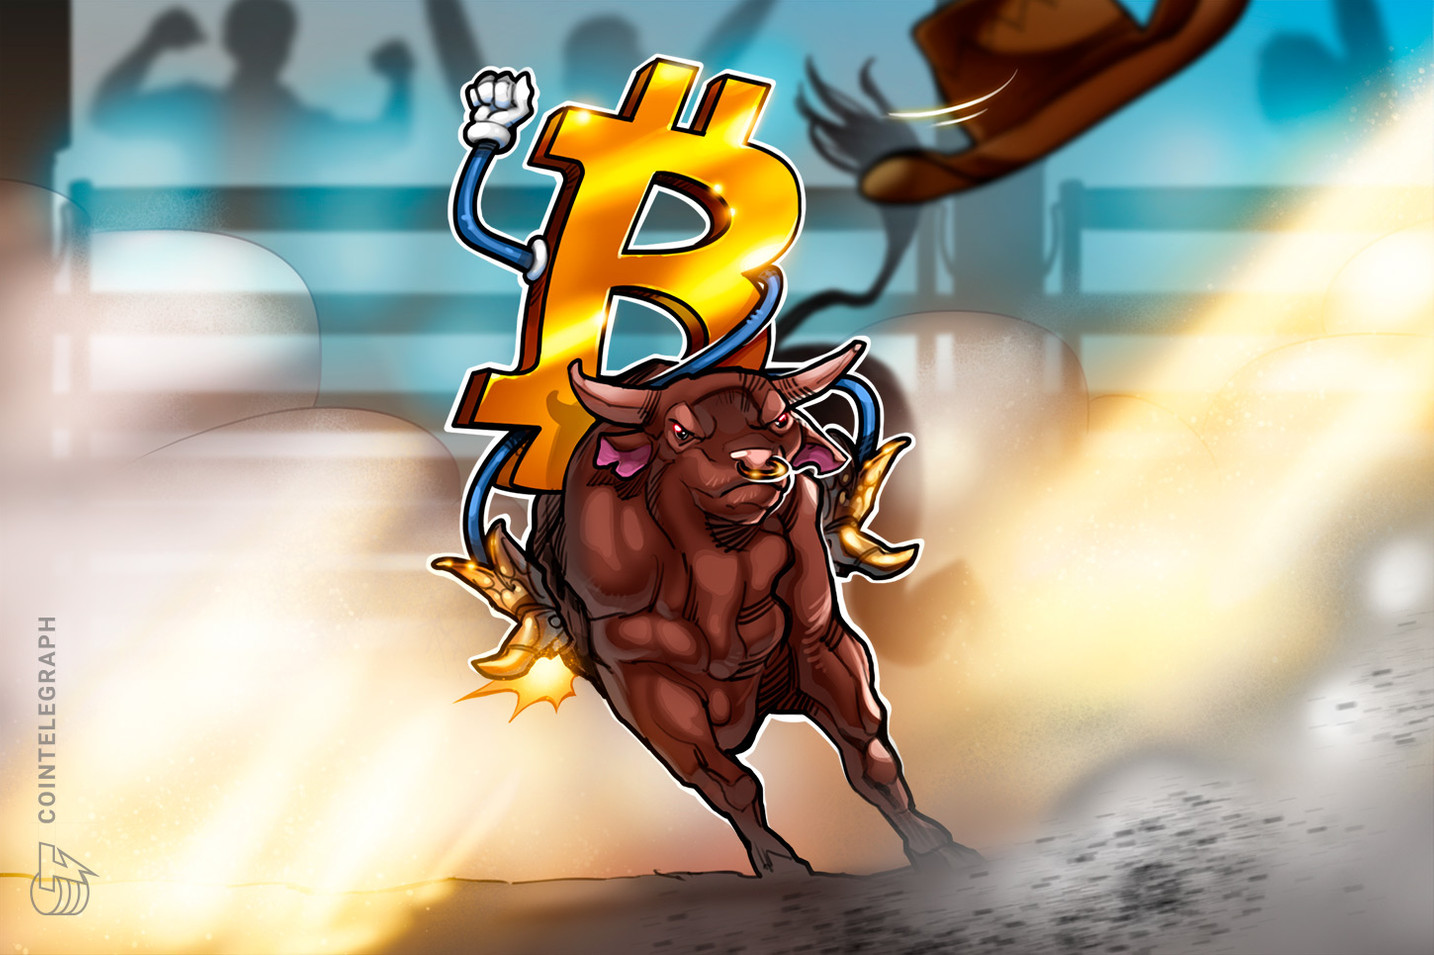 Bitcoin Price Hits 2020 High at $11.5K as Traders Say 'Bull Phase' Igniting